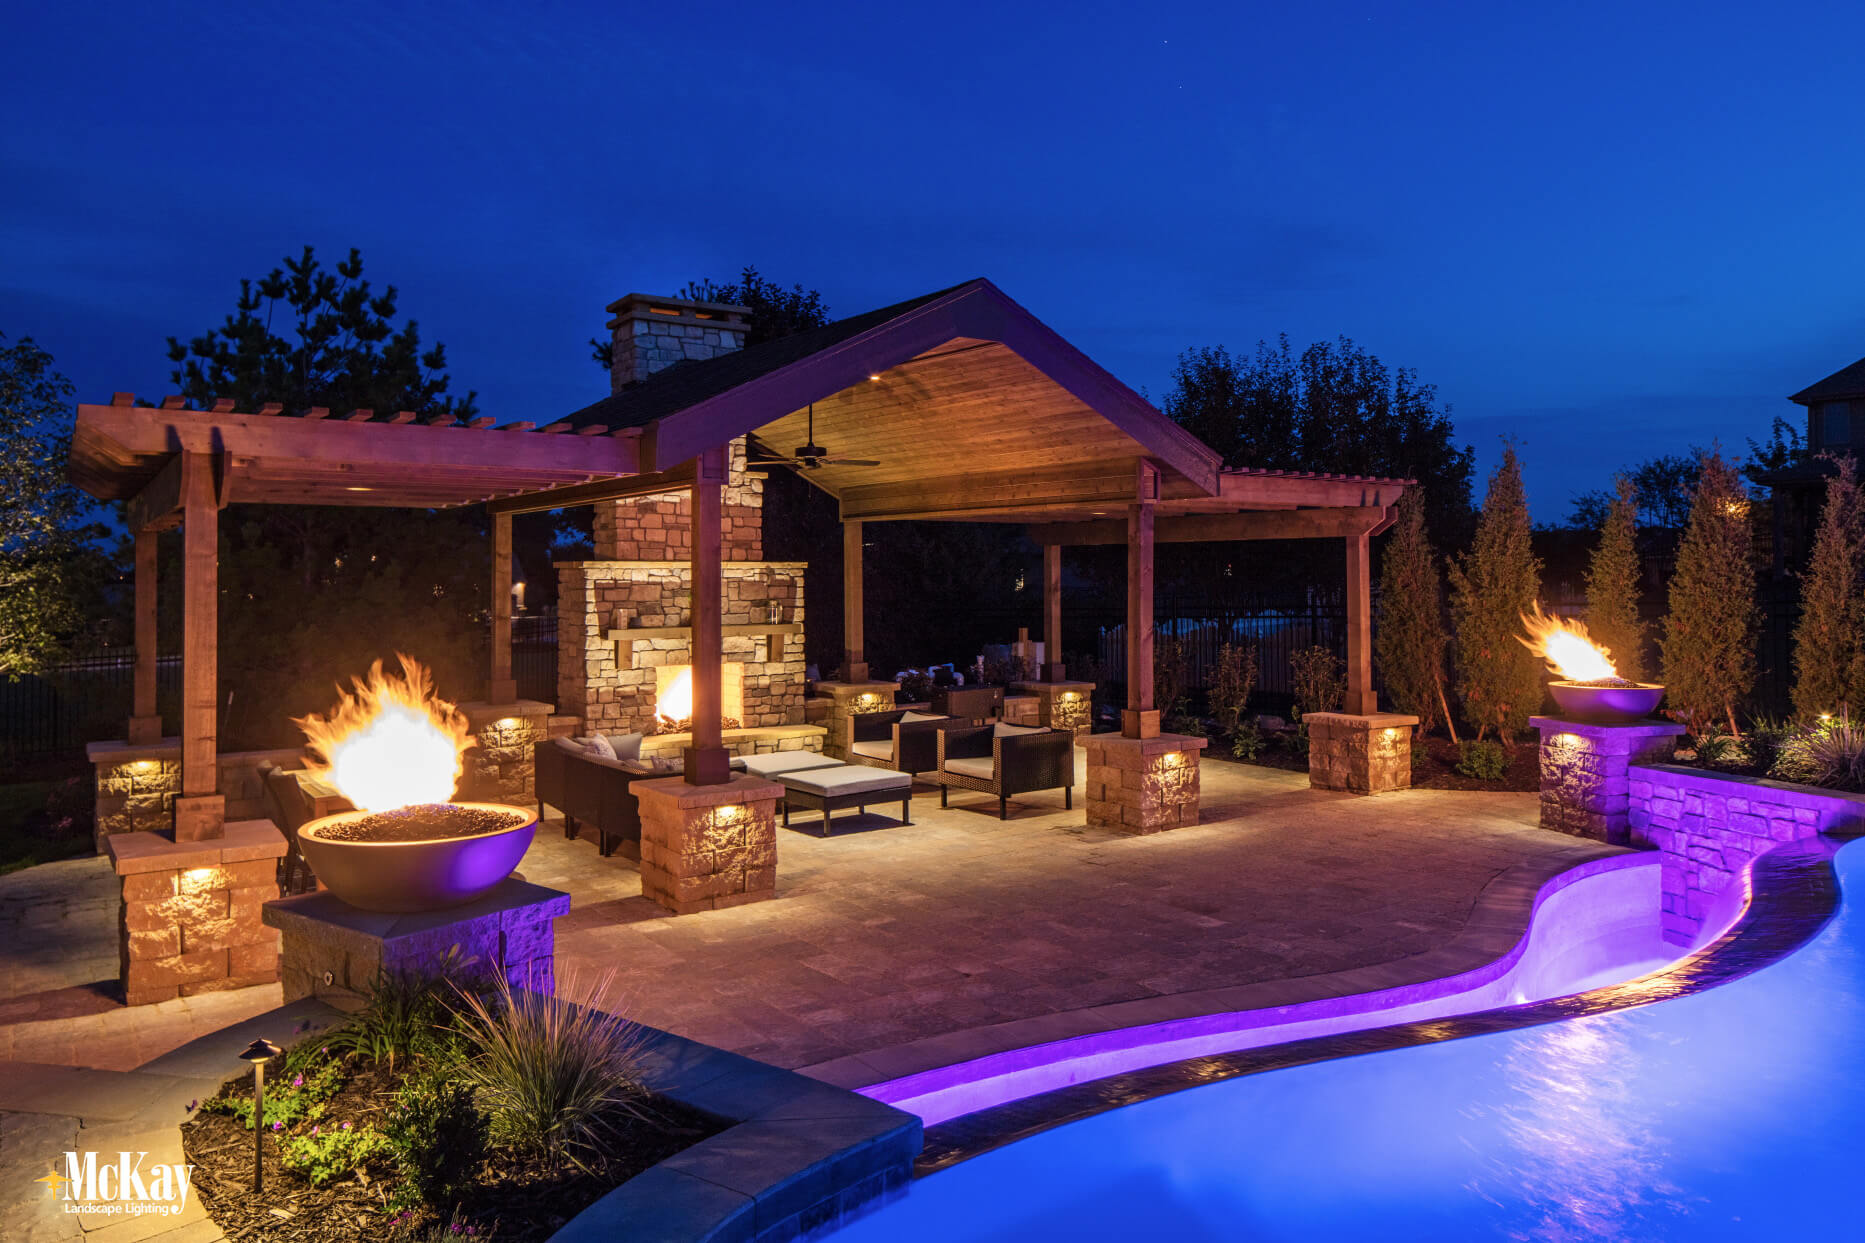 Pergola Lighting Omaha Nebraska McKay Landscape Lighting